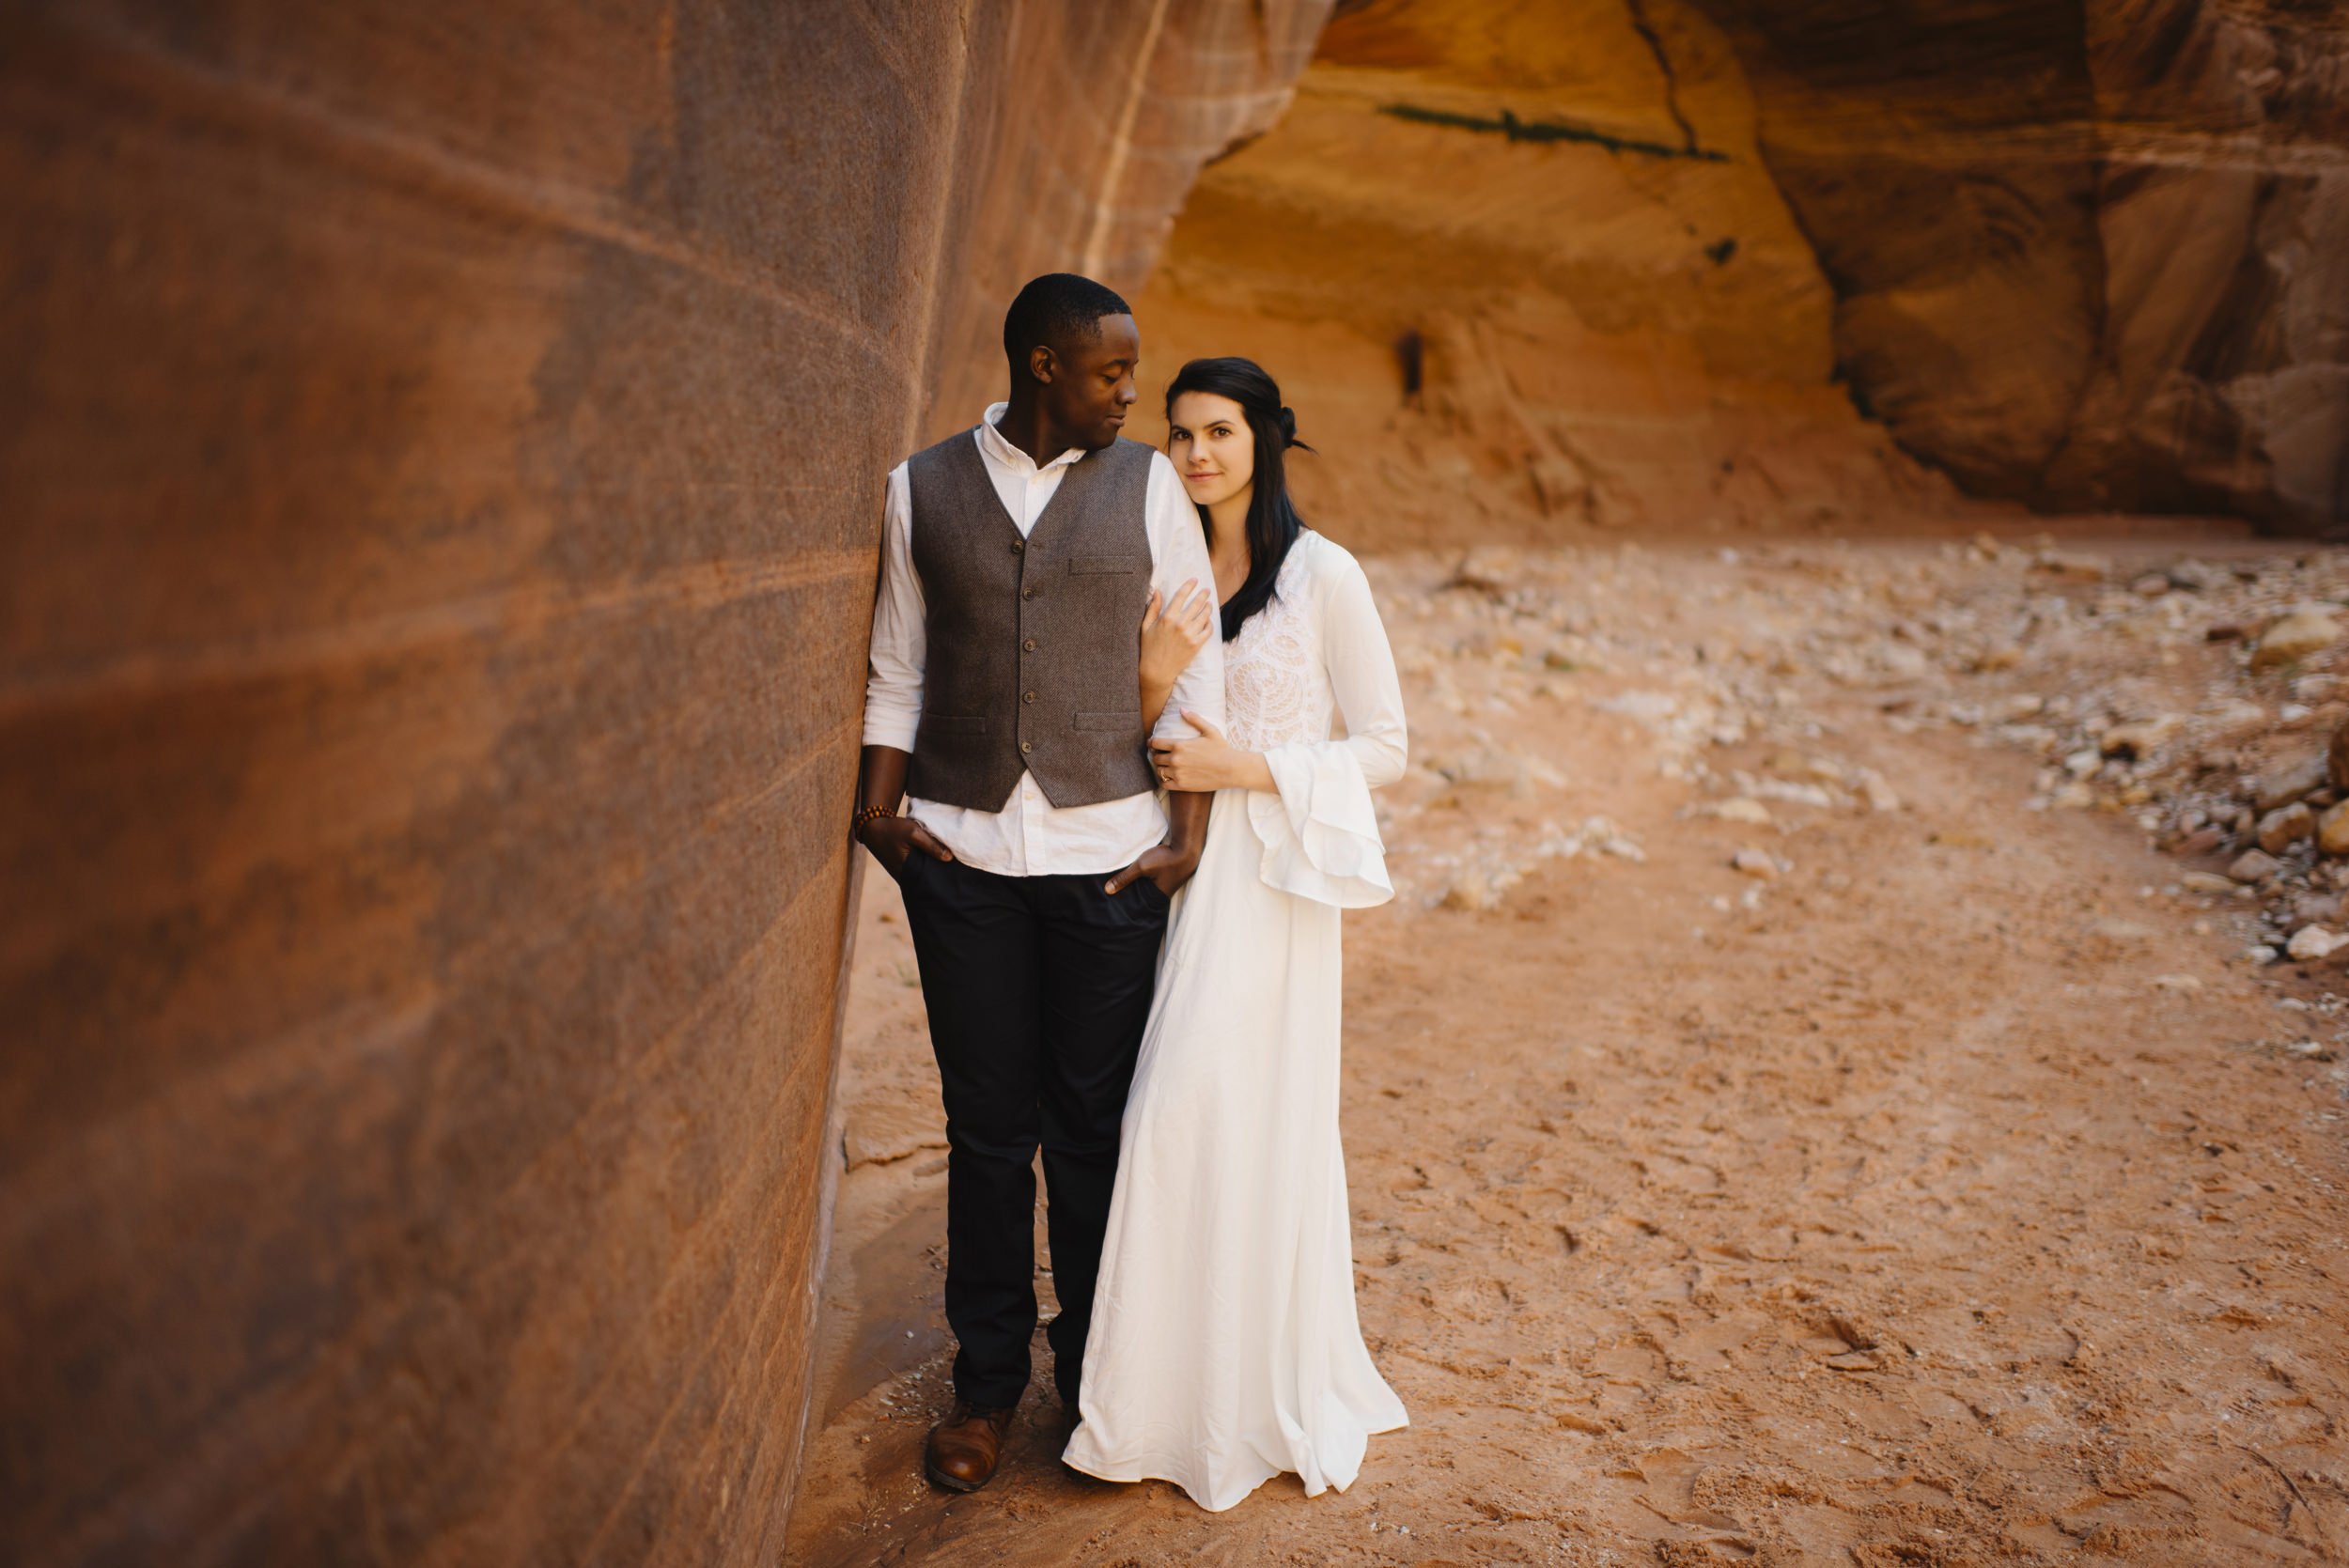 A woman holds her husbands arm during their Slot Canyon Couples Adventure Photography Session with Utah Destination Elopement Photographer Colby and Jess